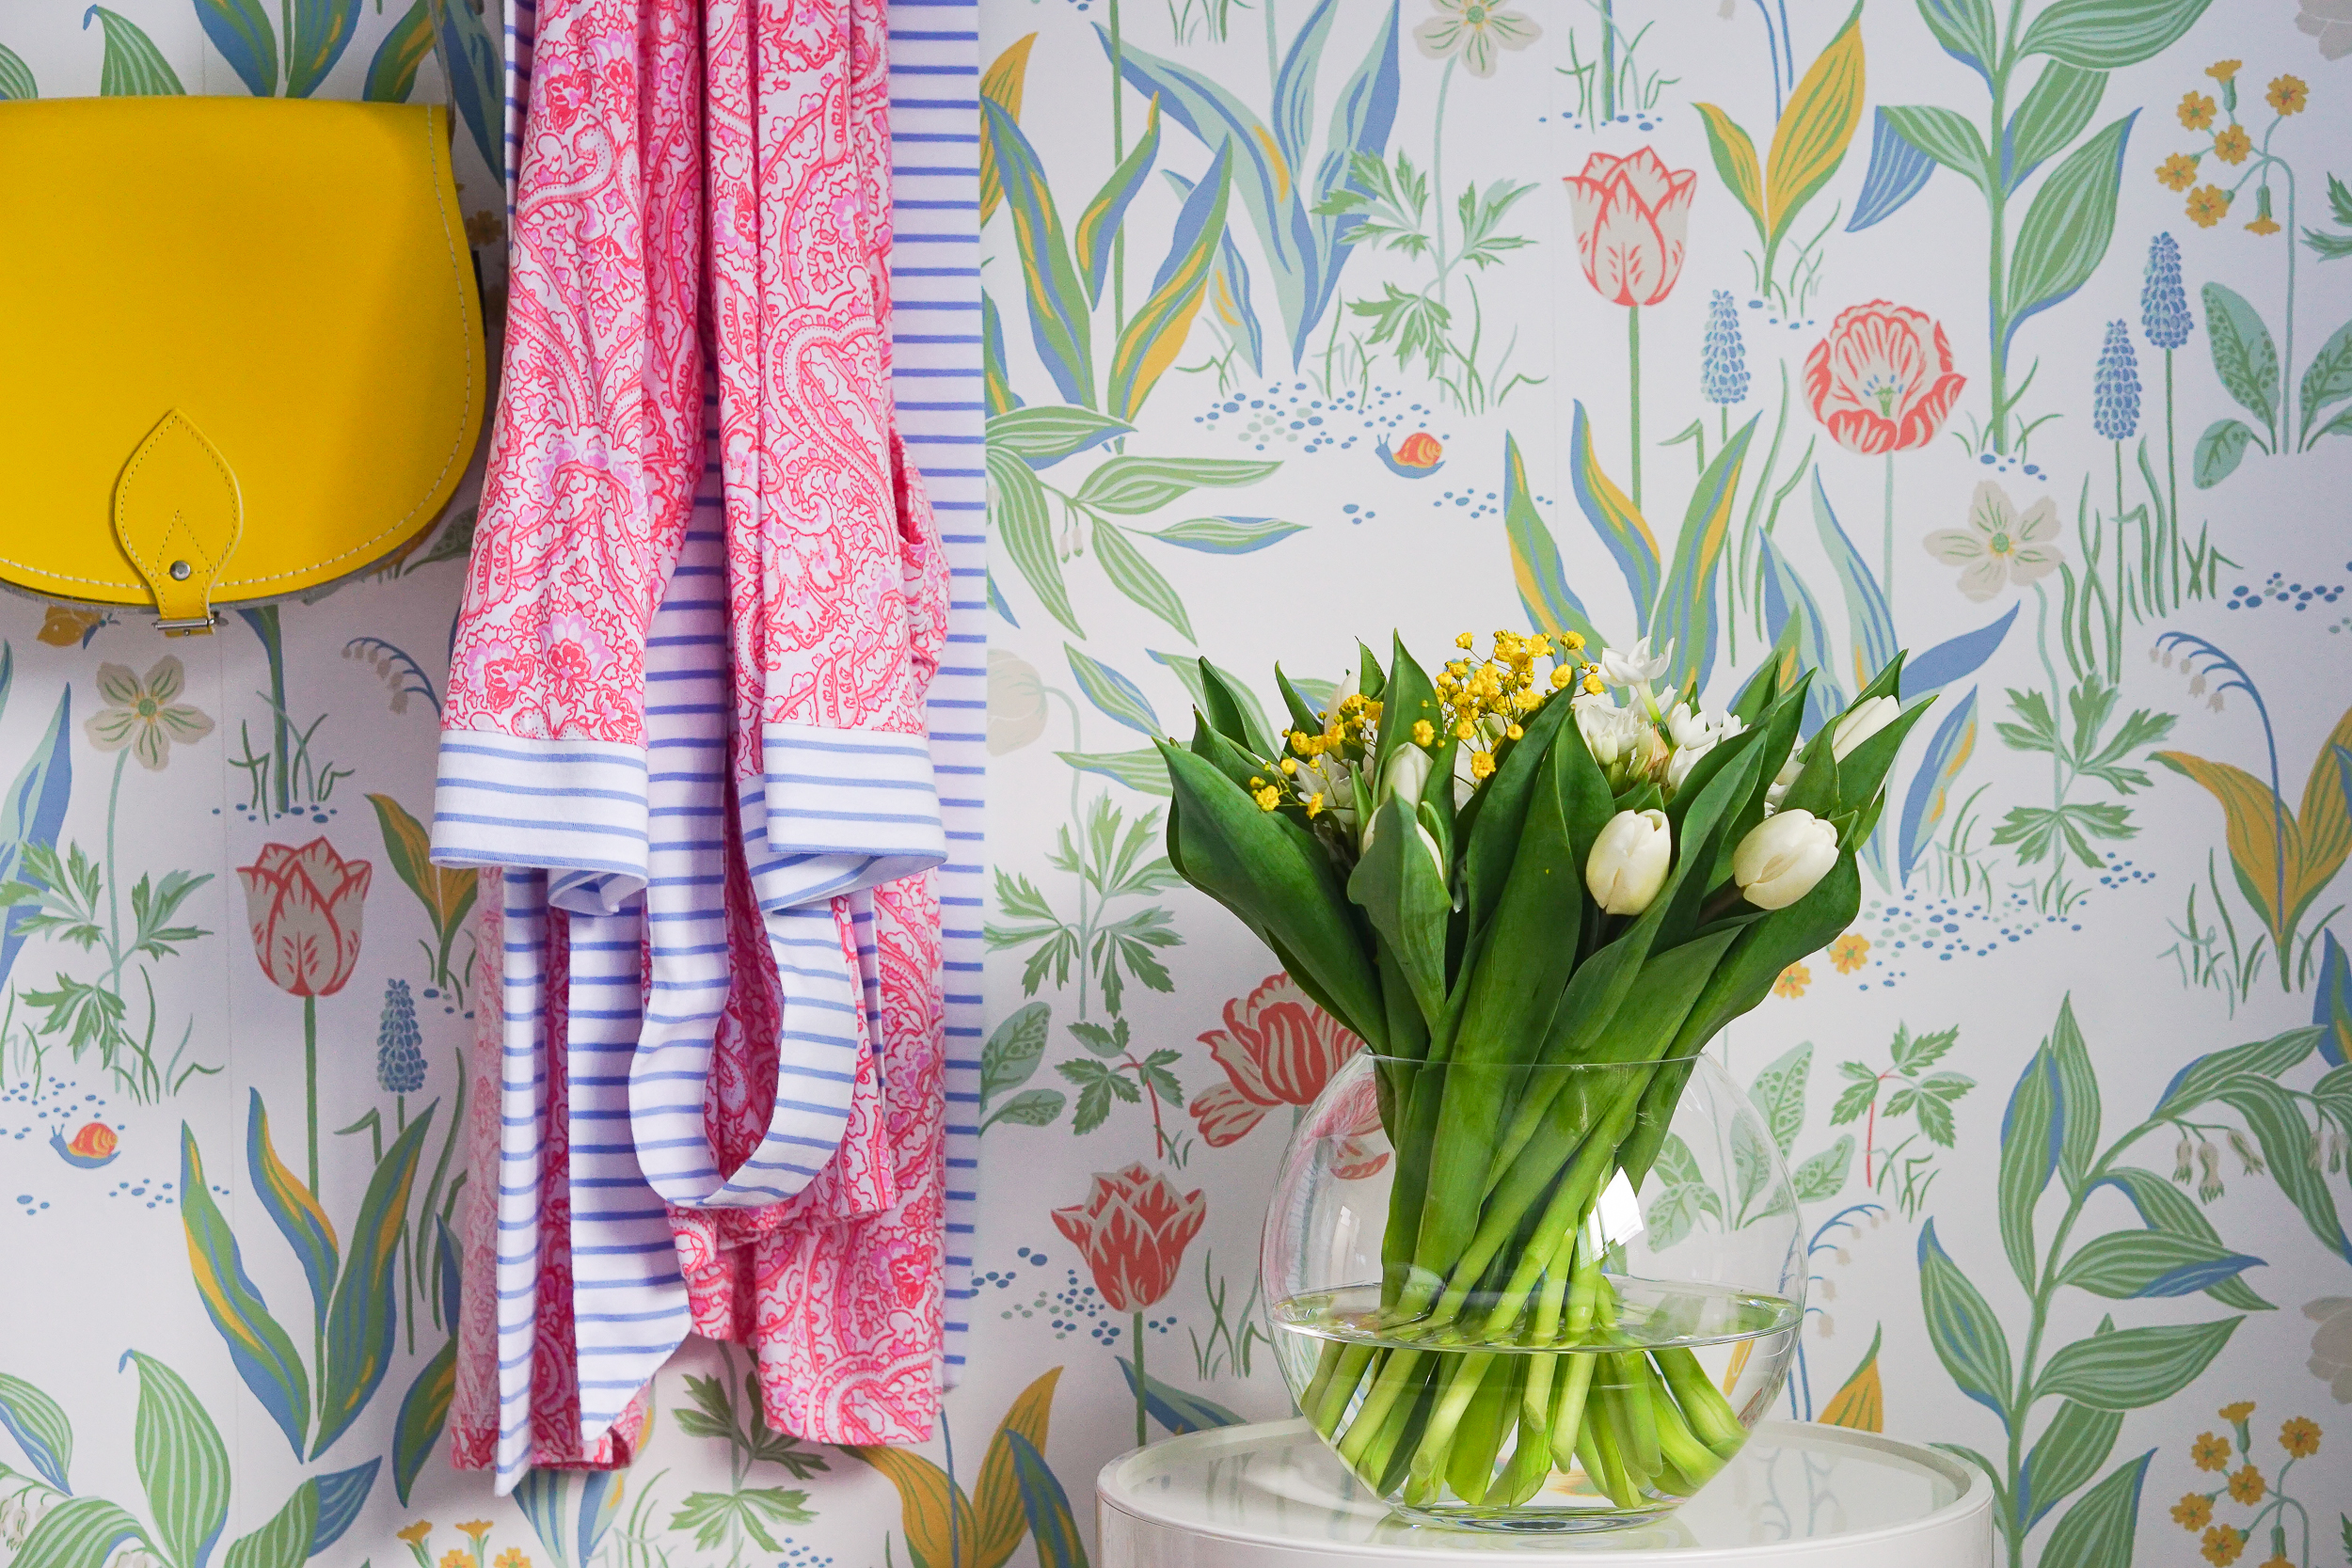 Floral wallpaper ... in bloom all year round